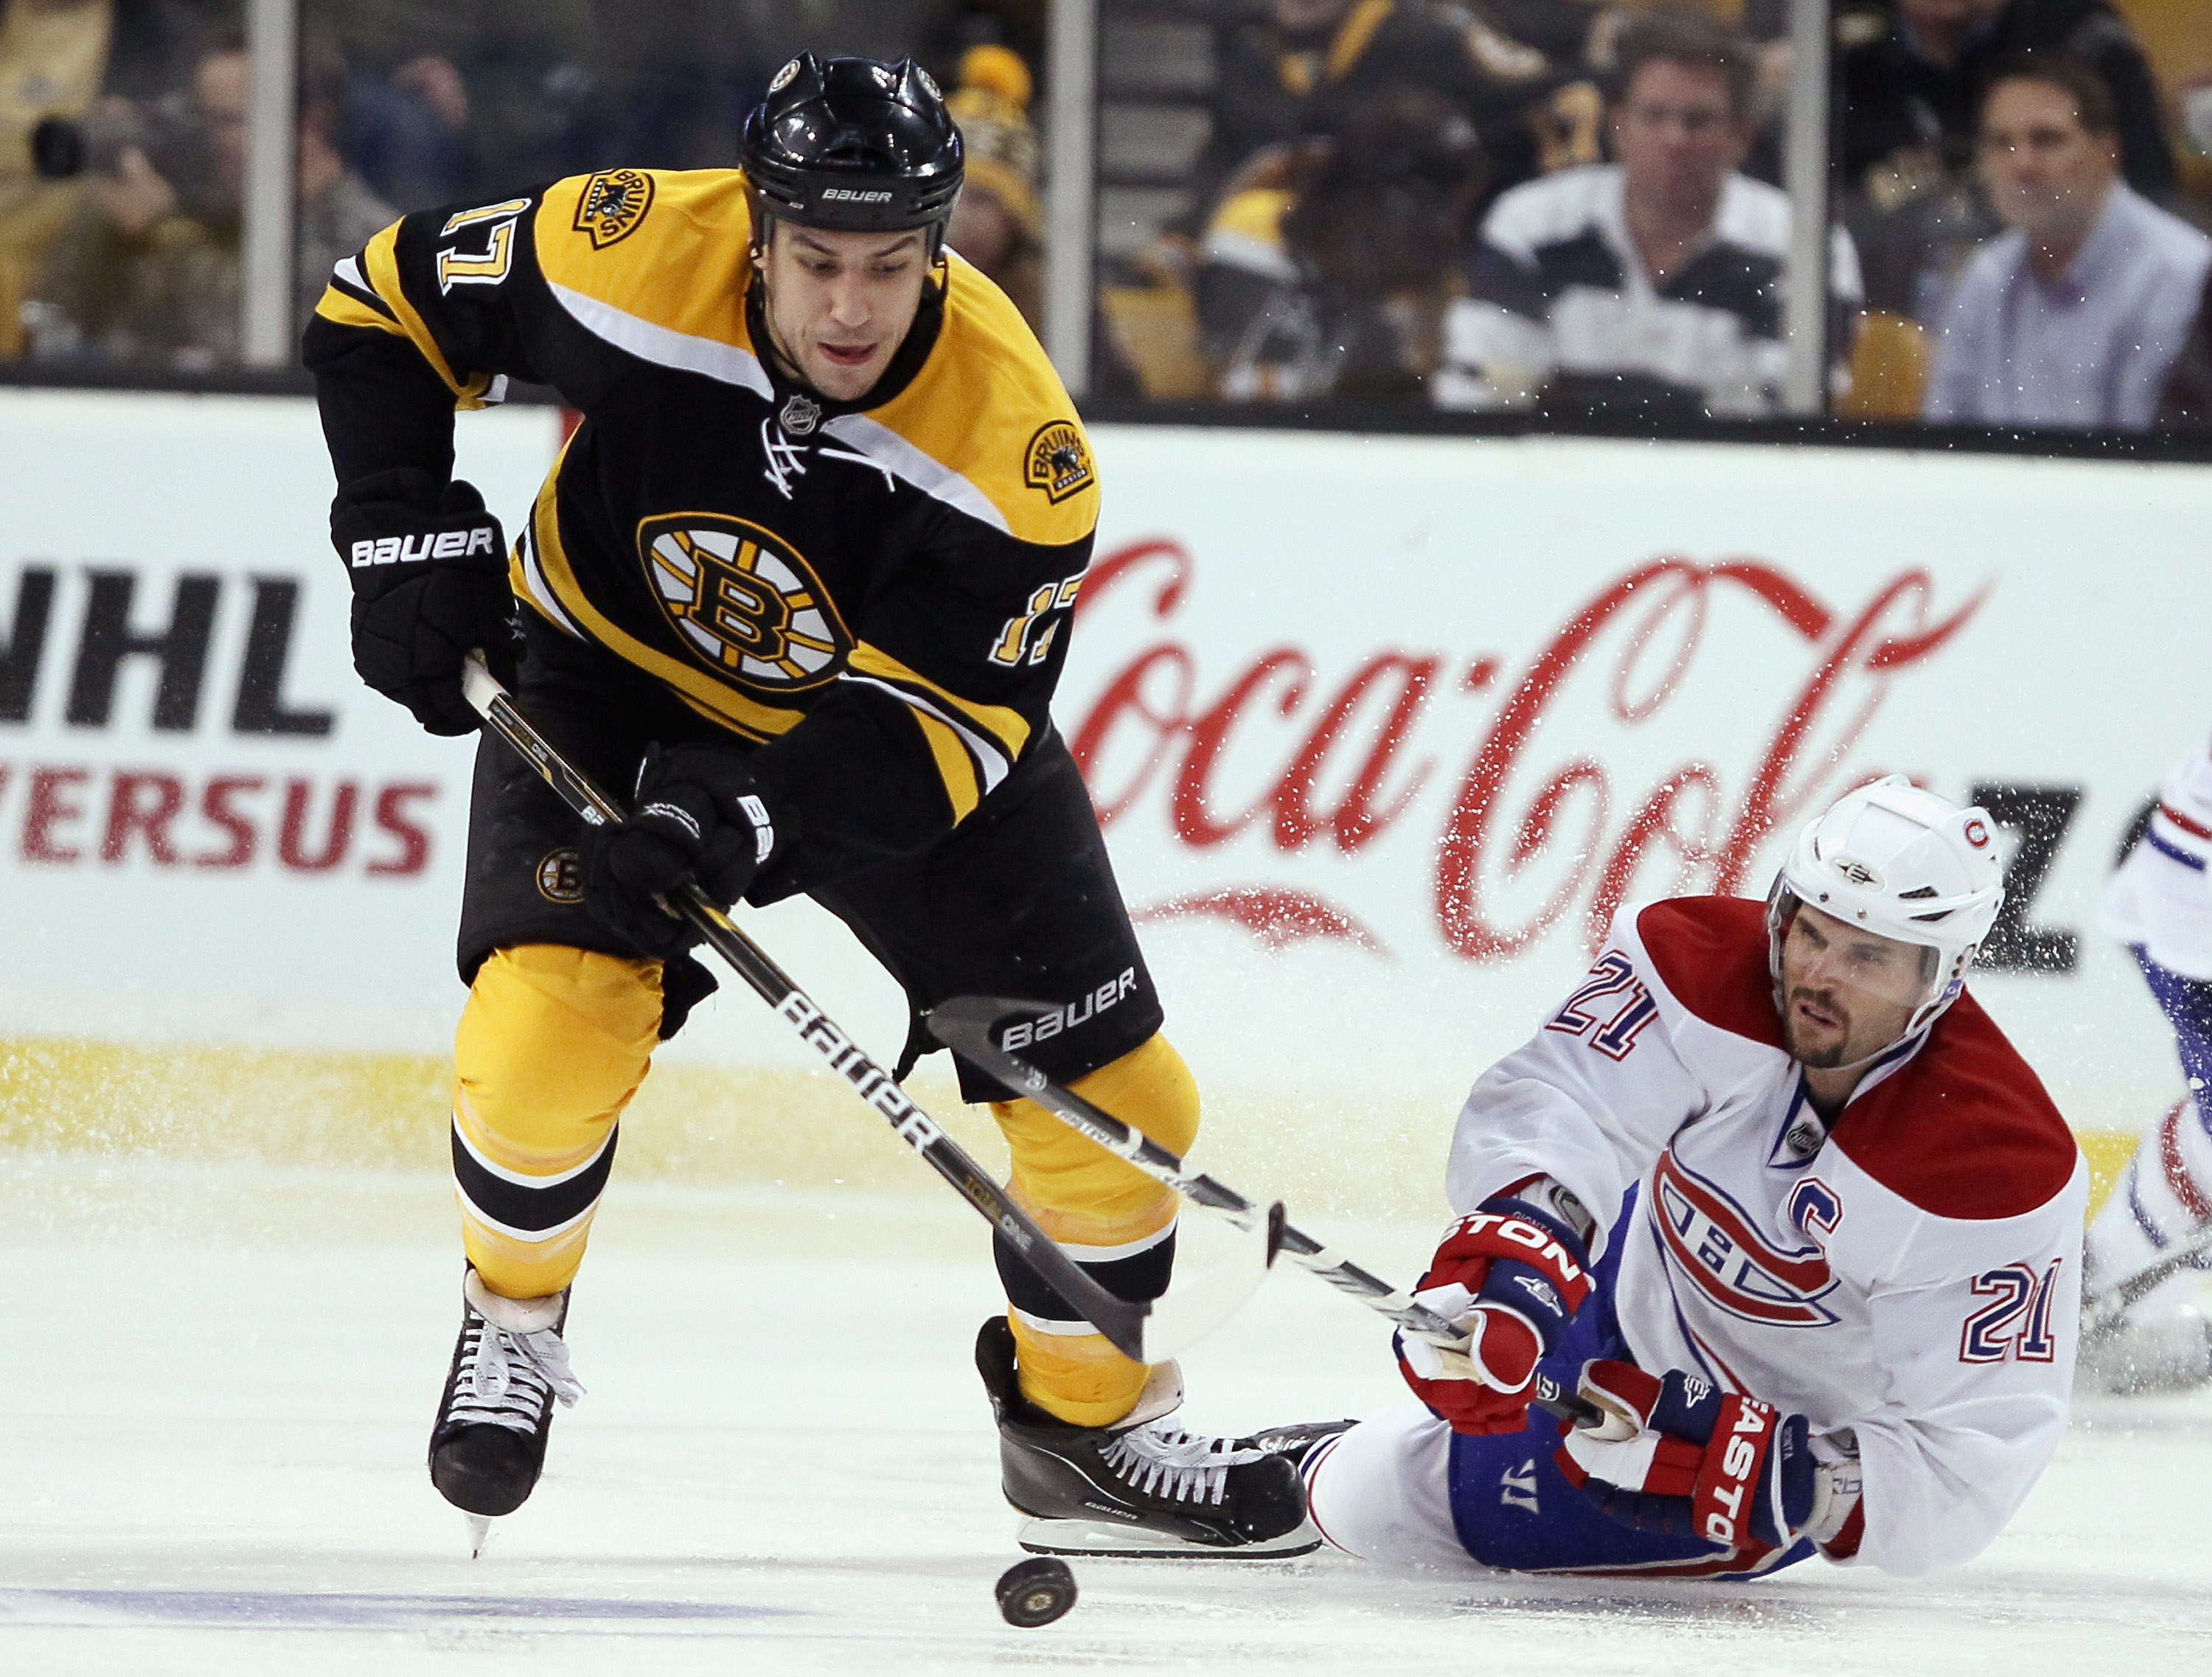 BOSTON, MA - APRIL 14:  Milan Lucic #17 of the Boston Bruins steals the puck from Brian Gionta #21 of the Montreal Canadiens in Game One of the Eastern Conference Quarterfinals during the 2011 NHL Stanley Cup Playoffs at TD Garden on April 14, 2011 in Bos